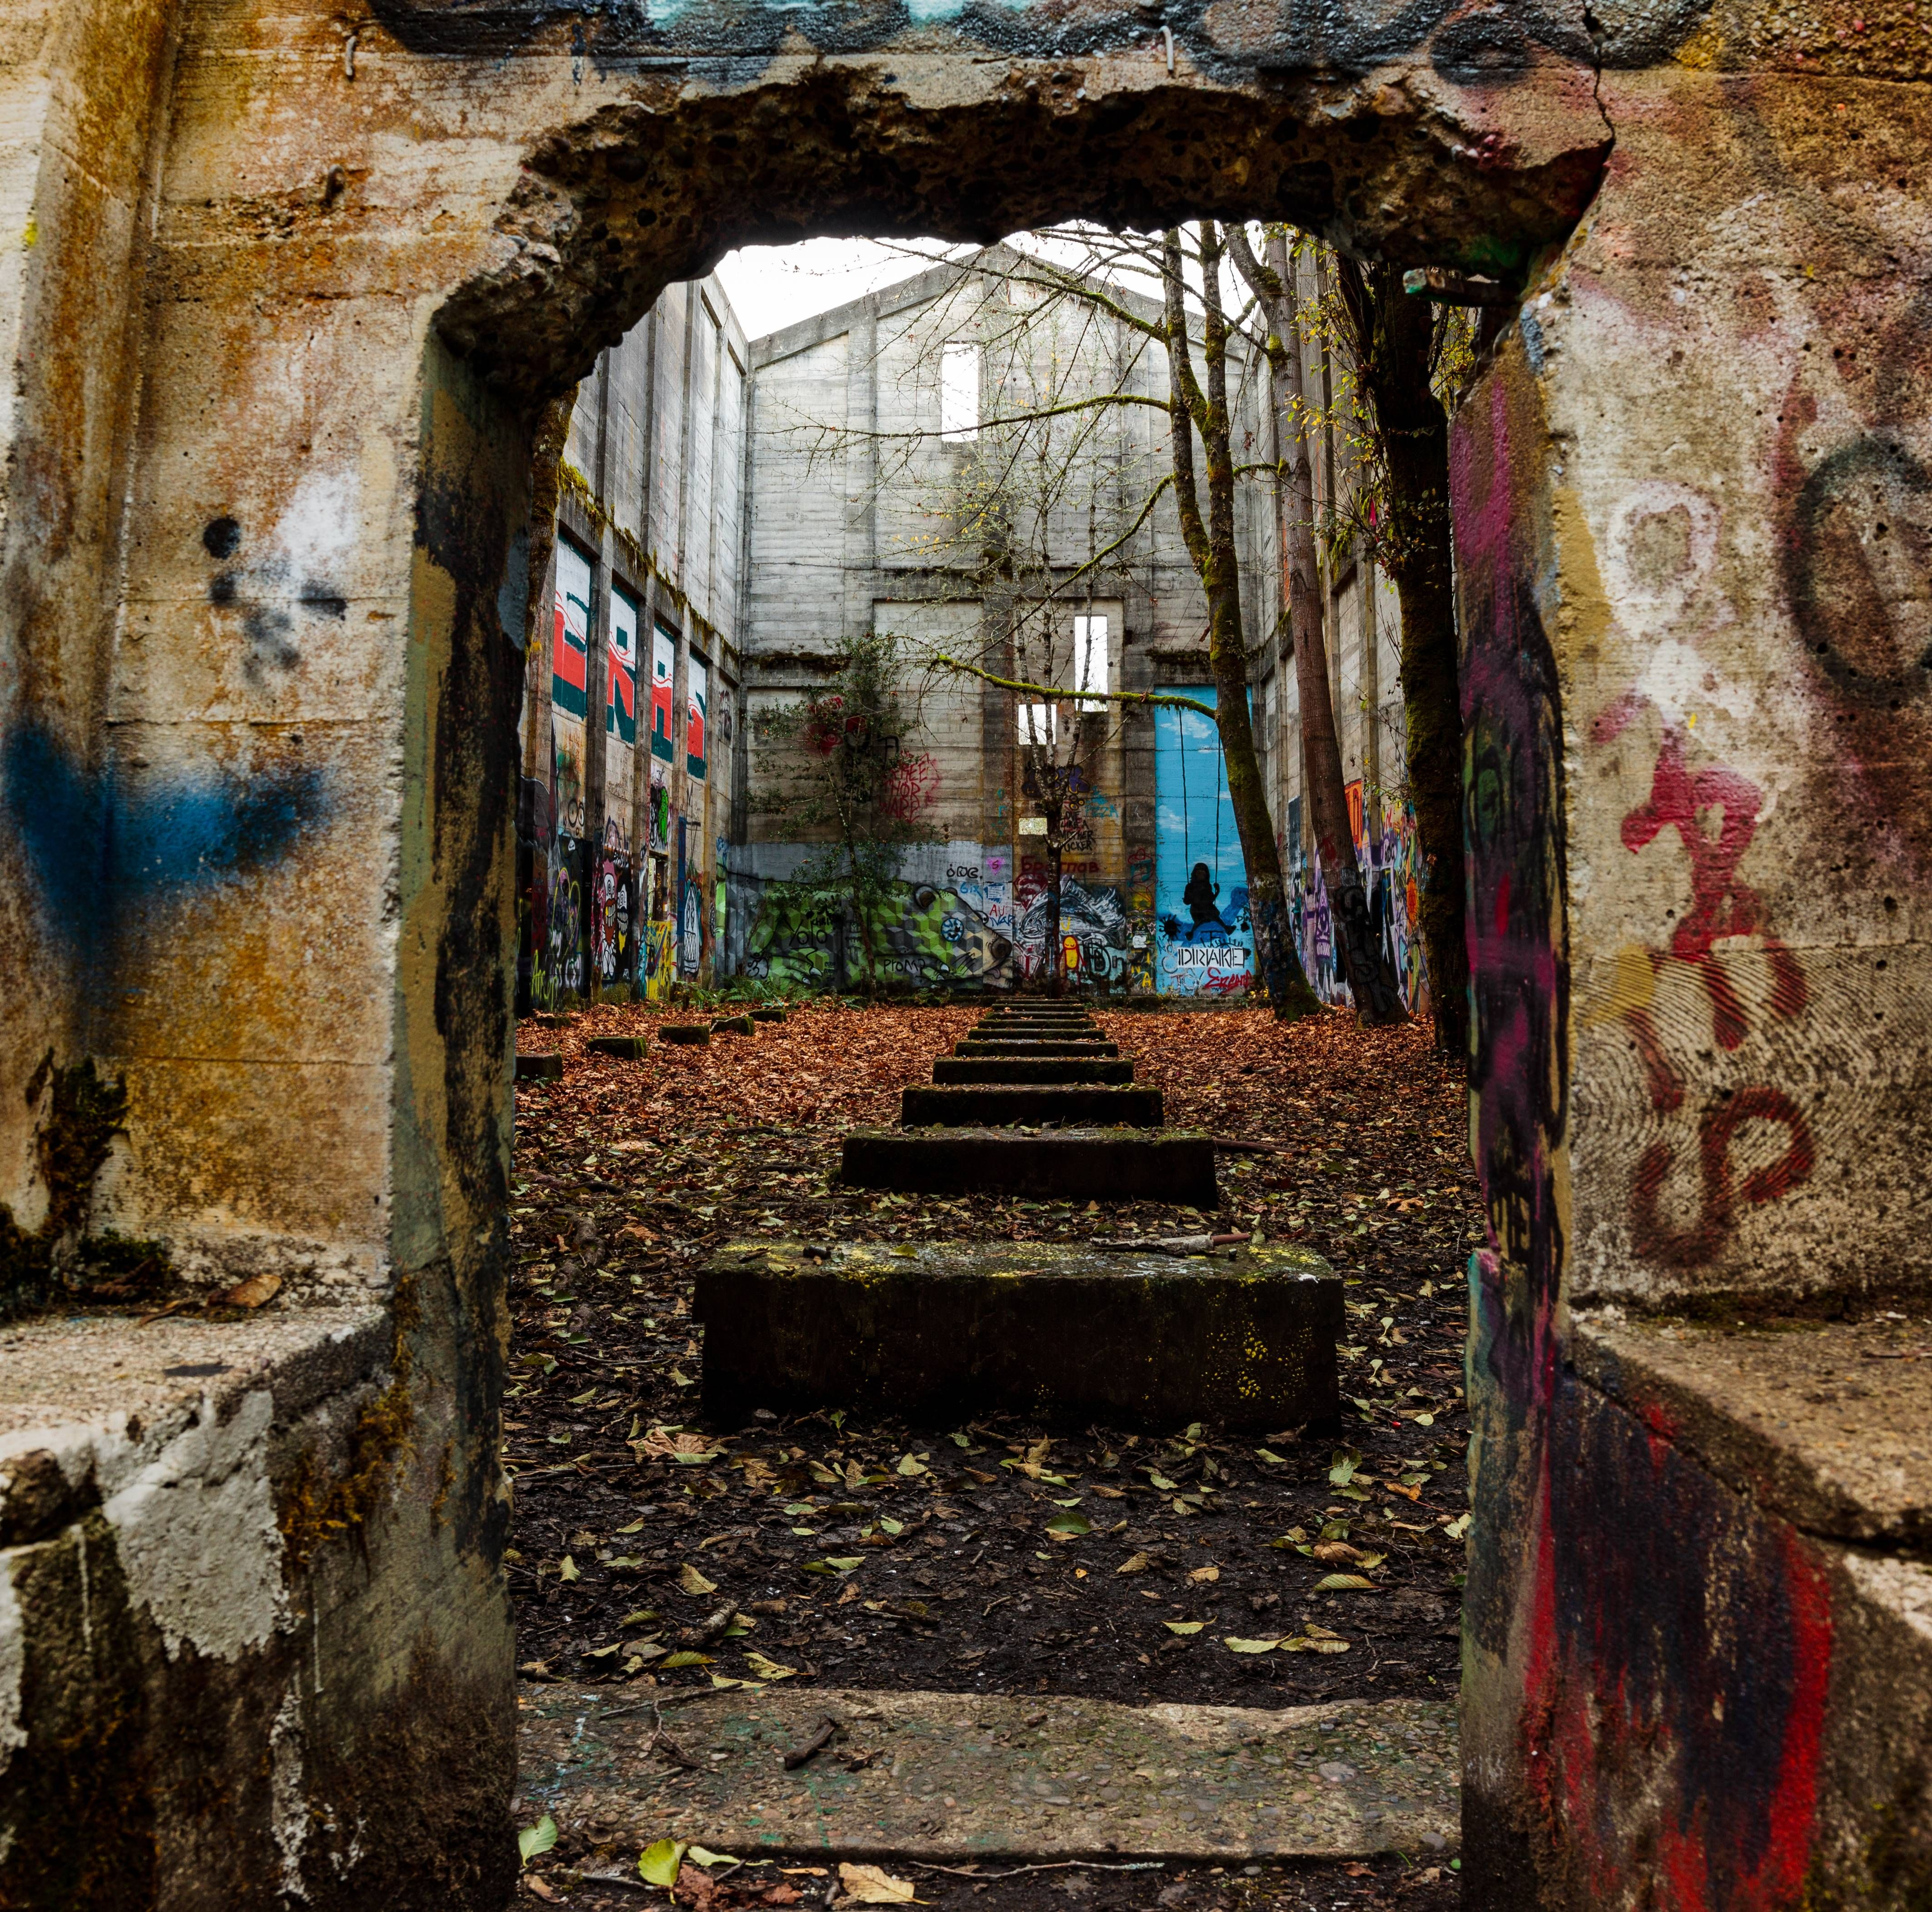 Abandoned Fuel Bunker With Trees Growing Inside. Vernonia